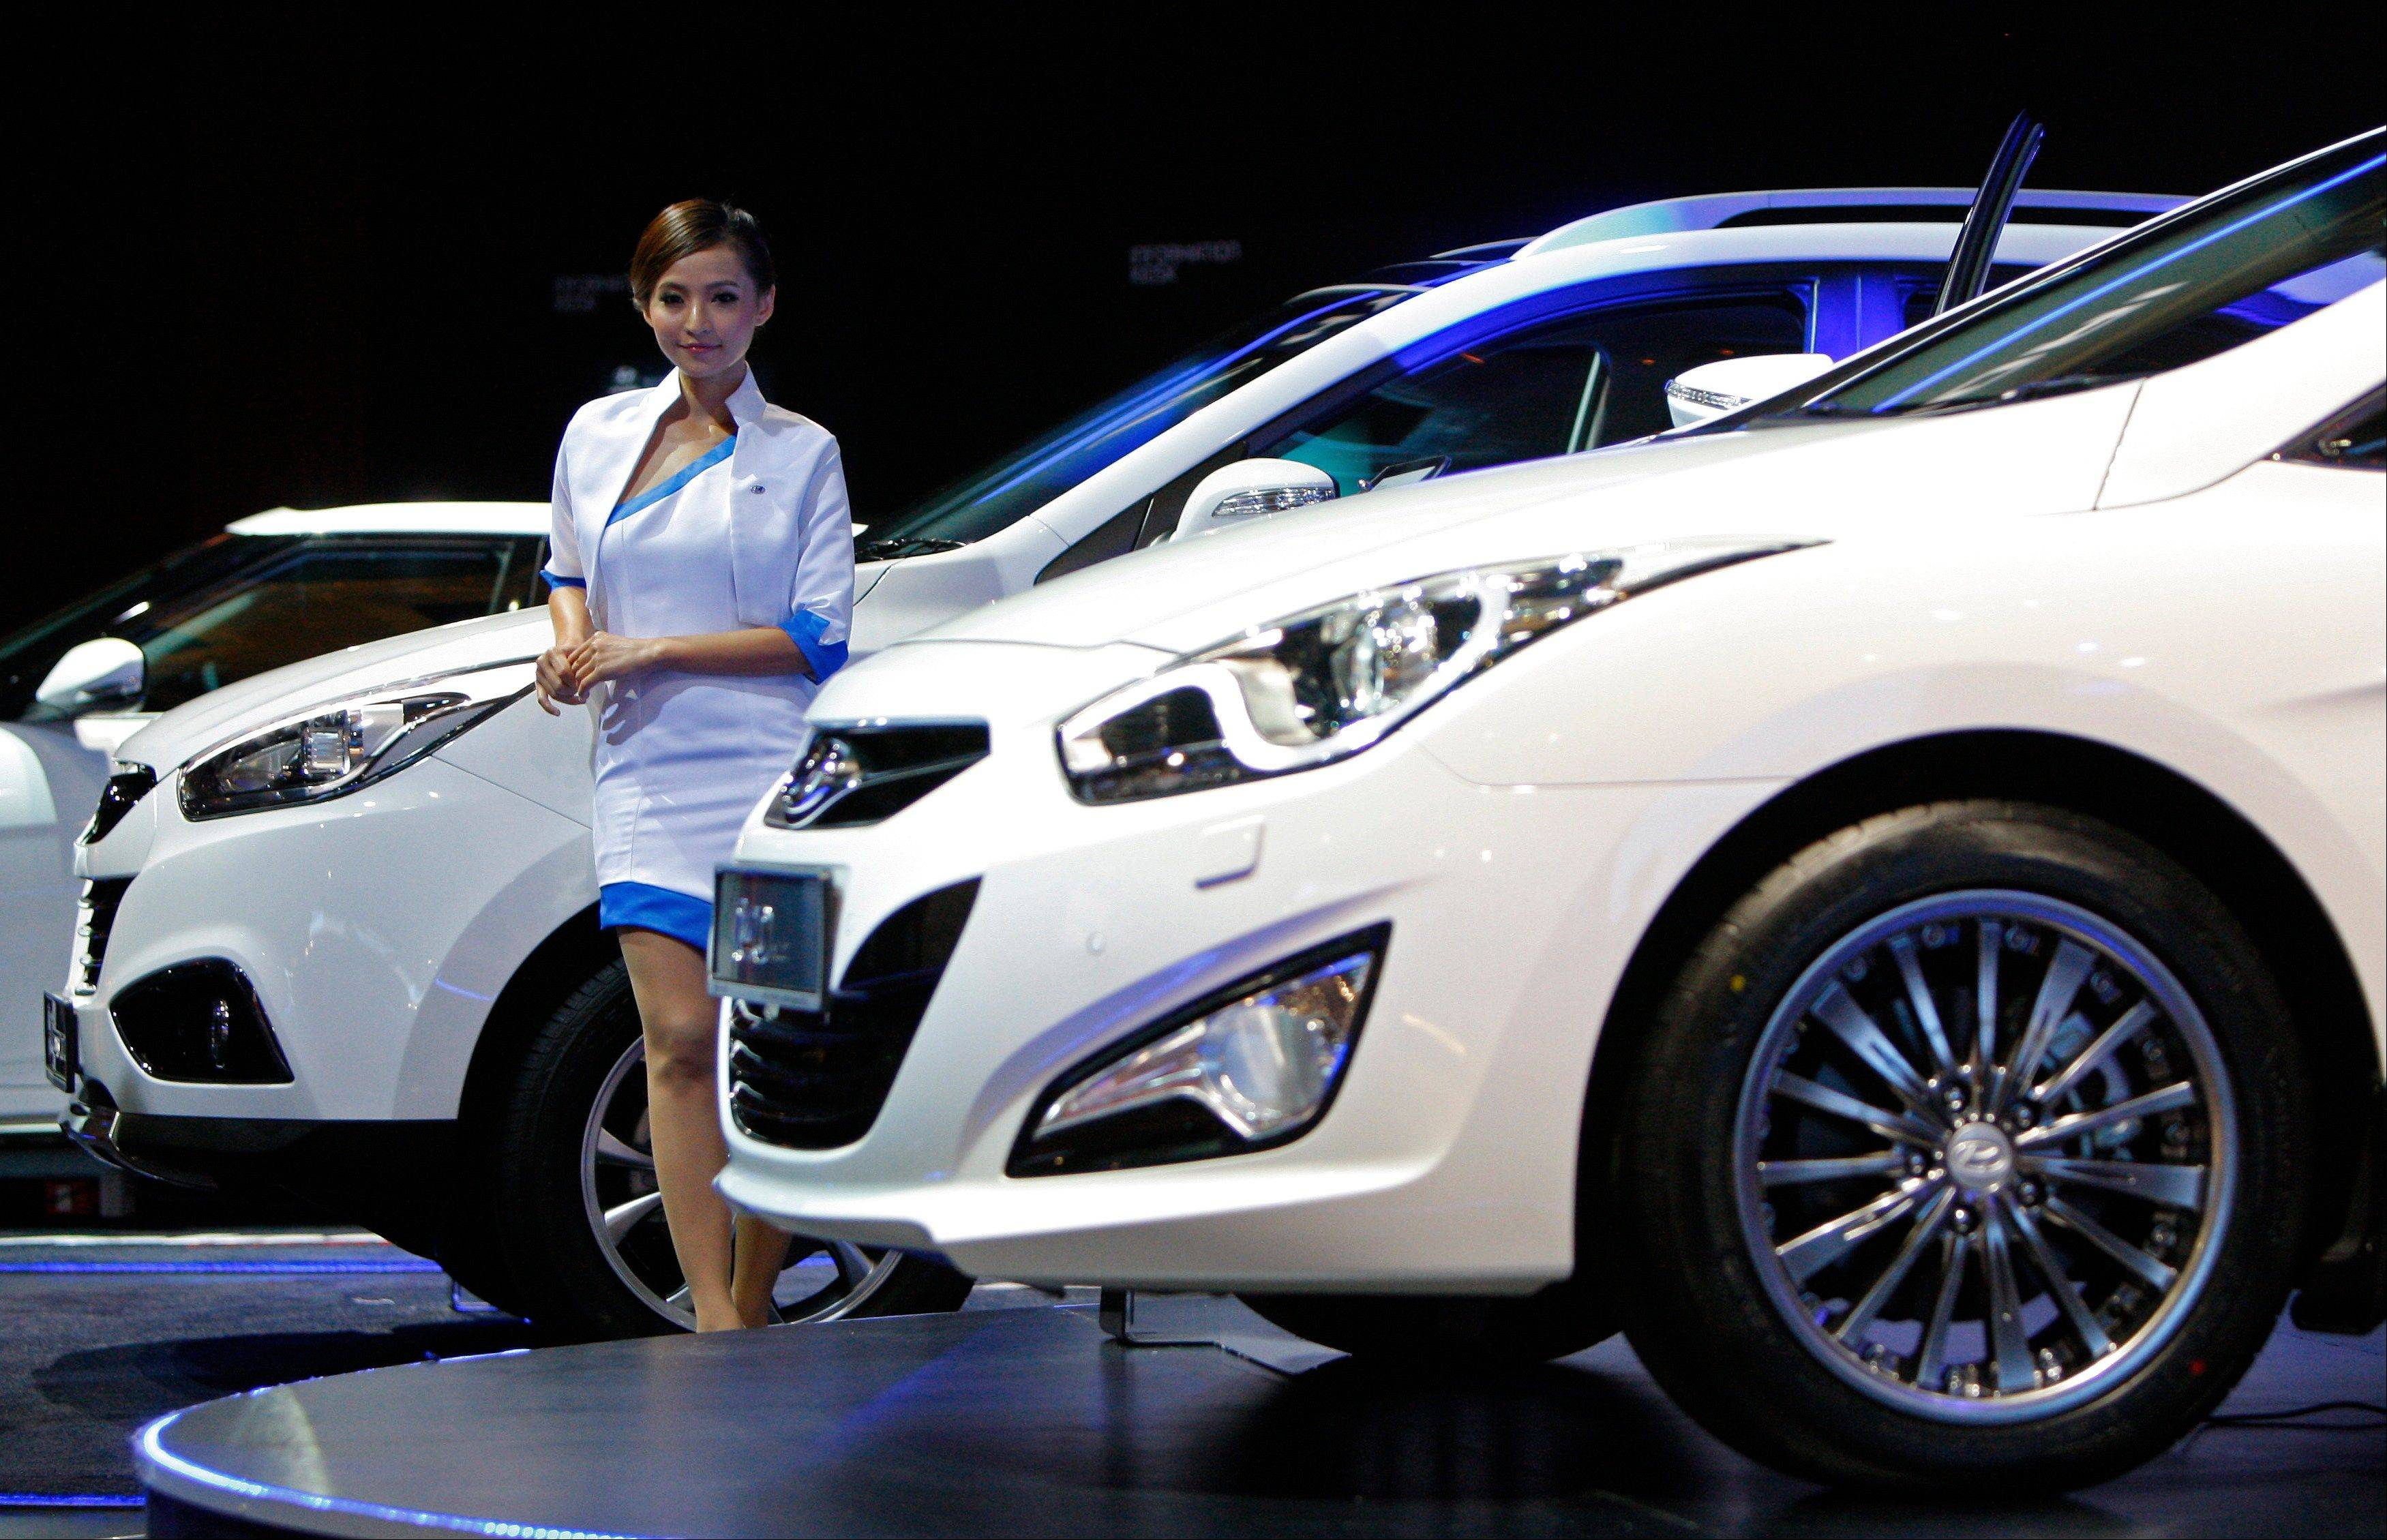 A model poses Sunday next to a Hyundai Tucson facelift on display at the Kuala Lumpur International Motor Show in Kuala Lumpur, Malaysia. In 2014, Hyundai says it will starts selling Tucson SUV powered by a hydrogen fuel cell. It will be the first mass-market vehicle of its type to be sold or leased in the U.S.